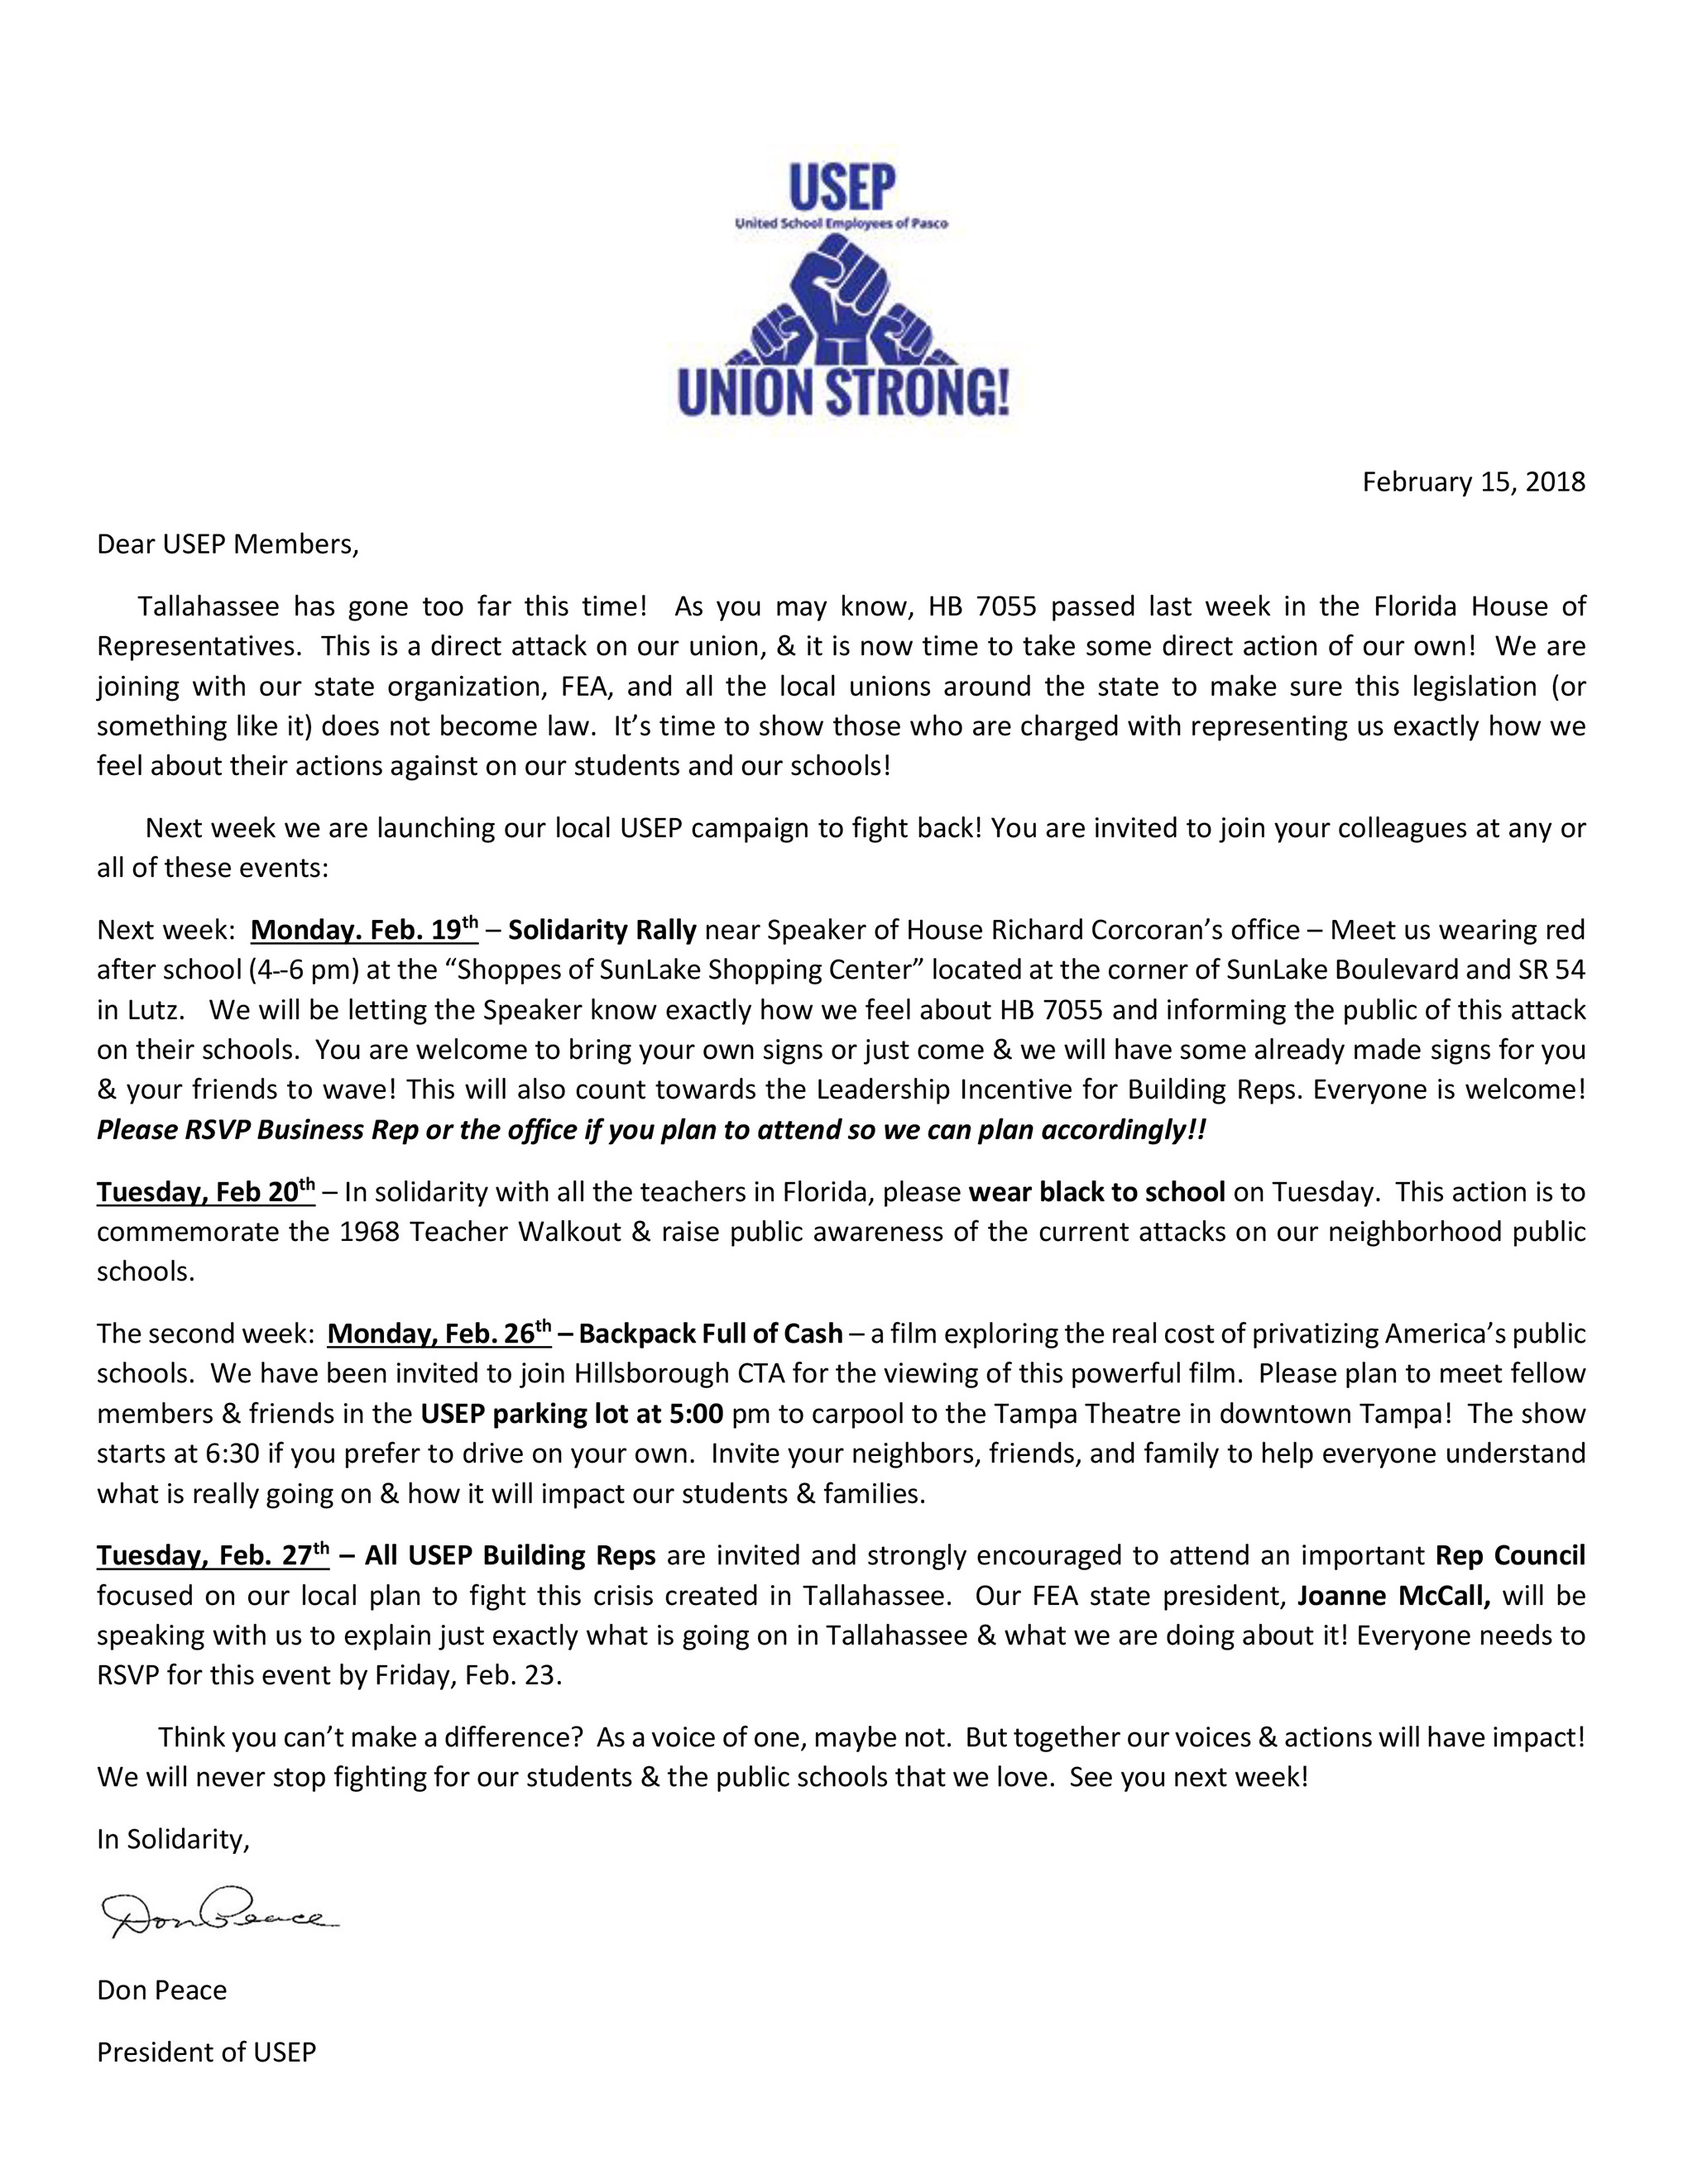 USEP 50 for 50 Campaign Letter